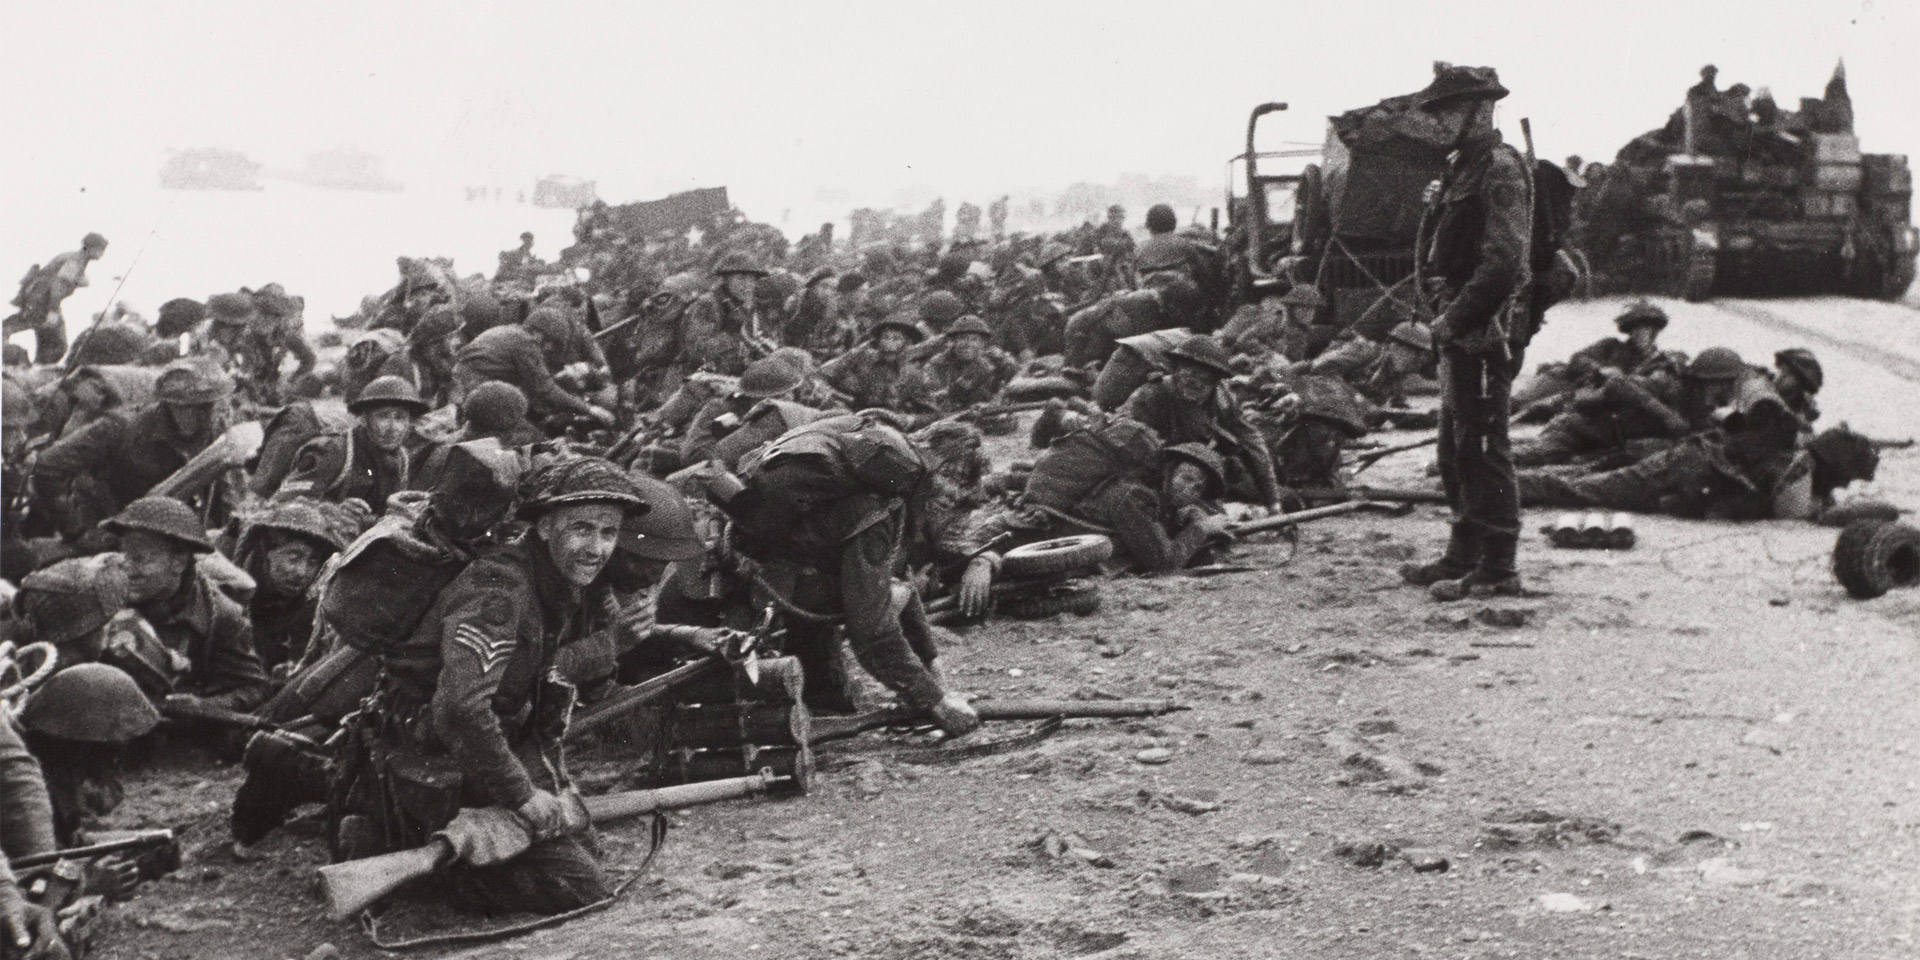 'The Storming of Brest', 6 June 1944